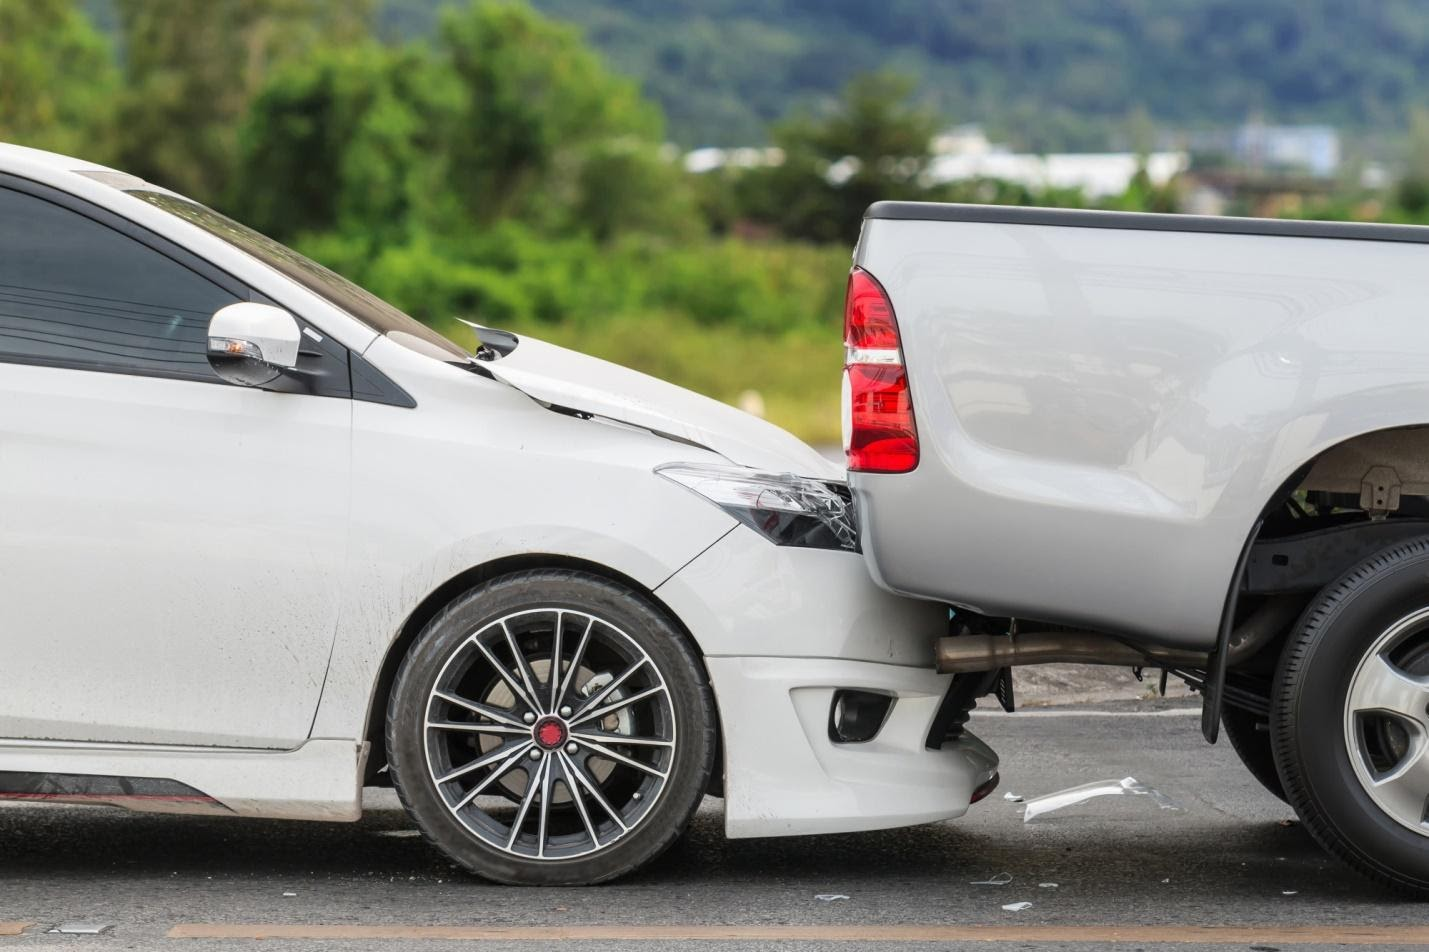 5 Causes of Car Accidents Everyone Should Avoid